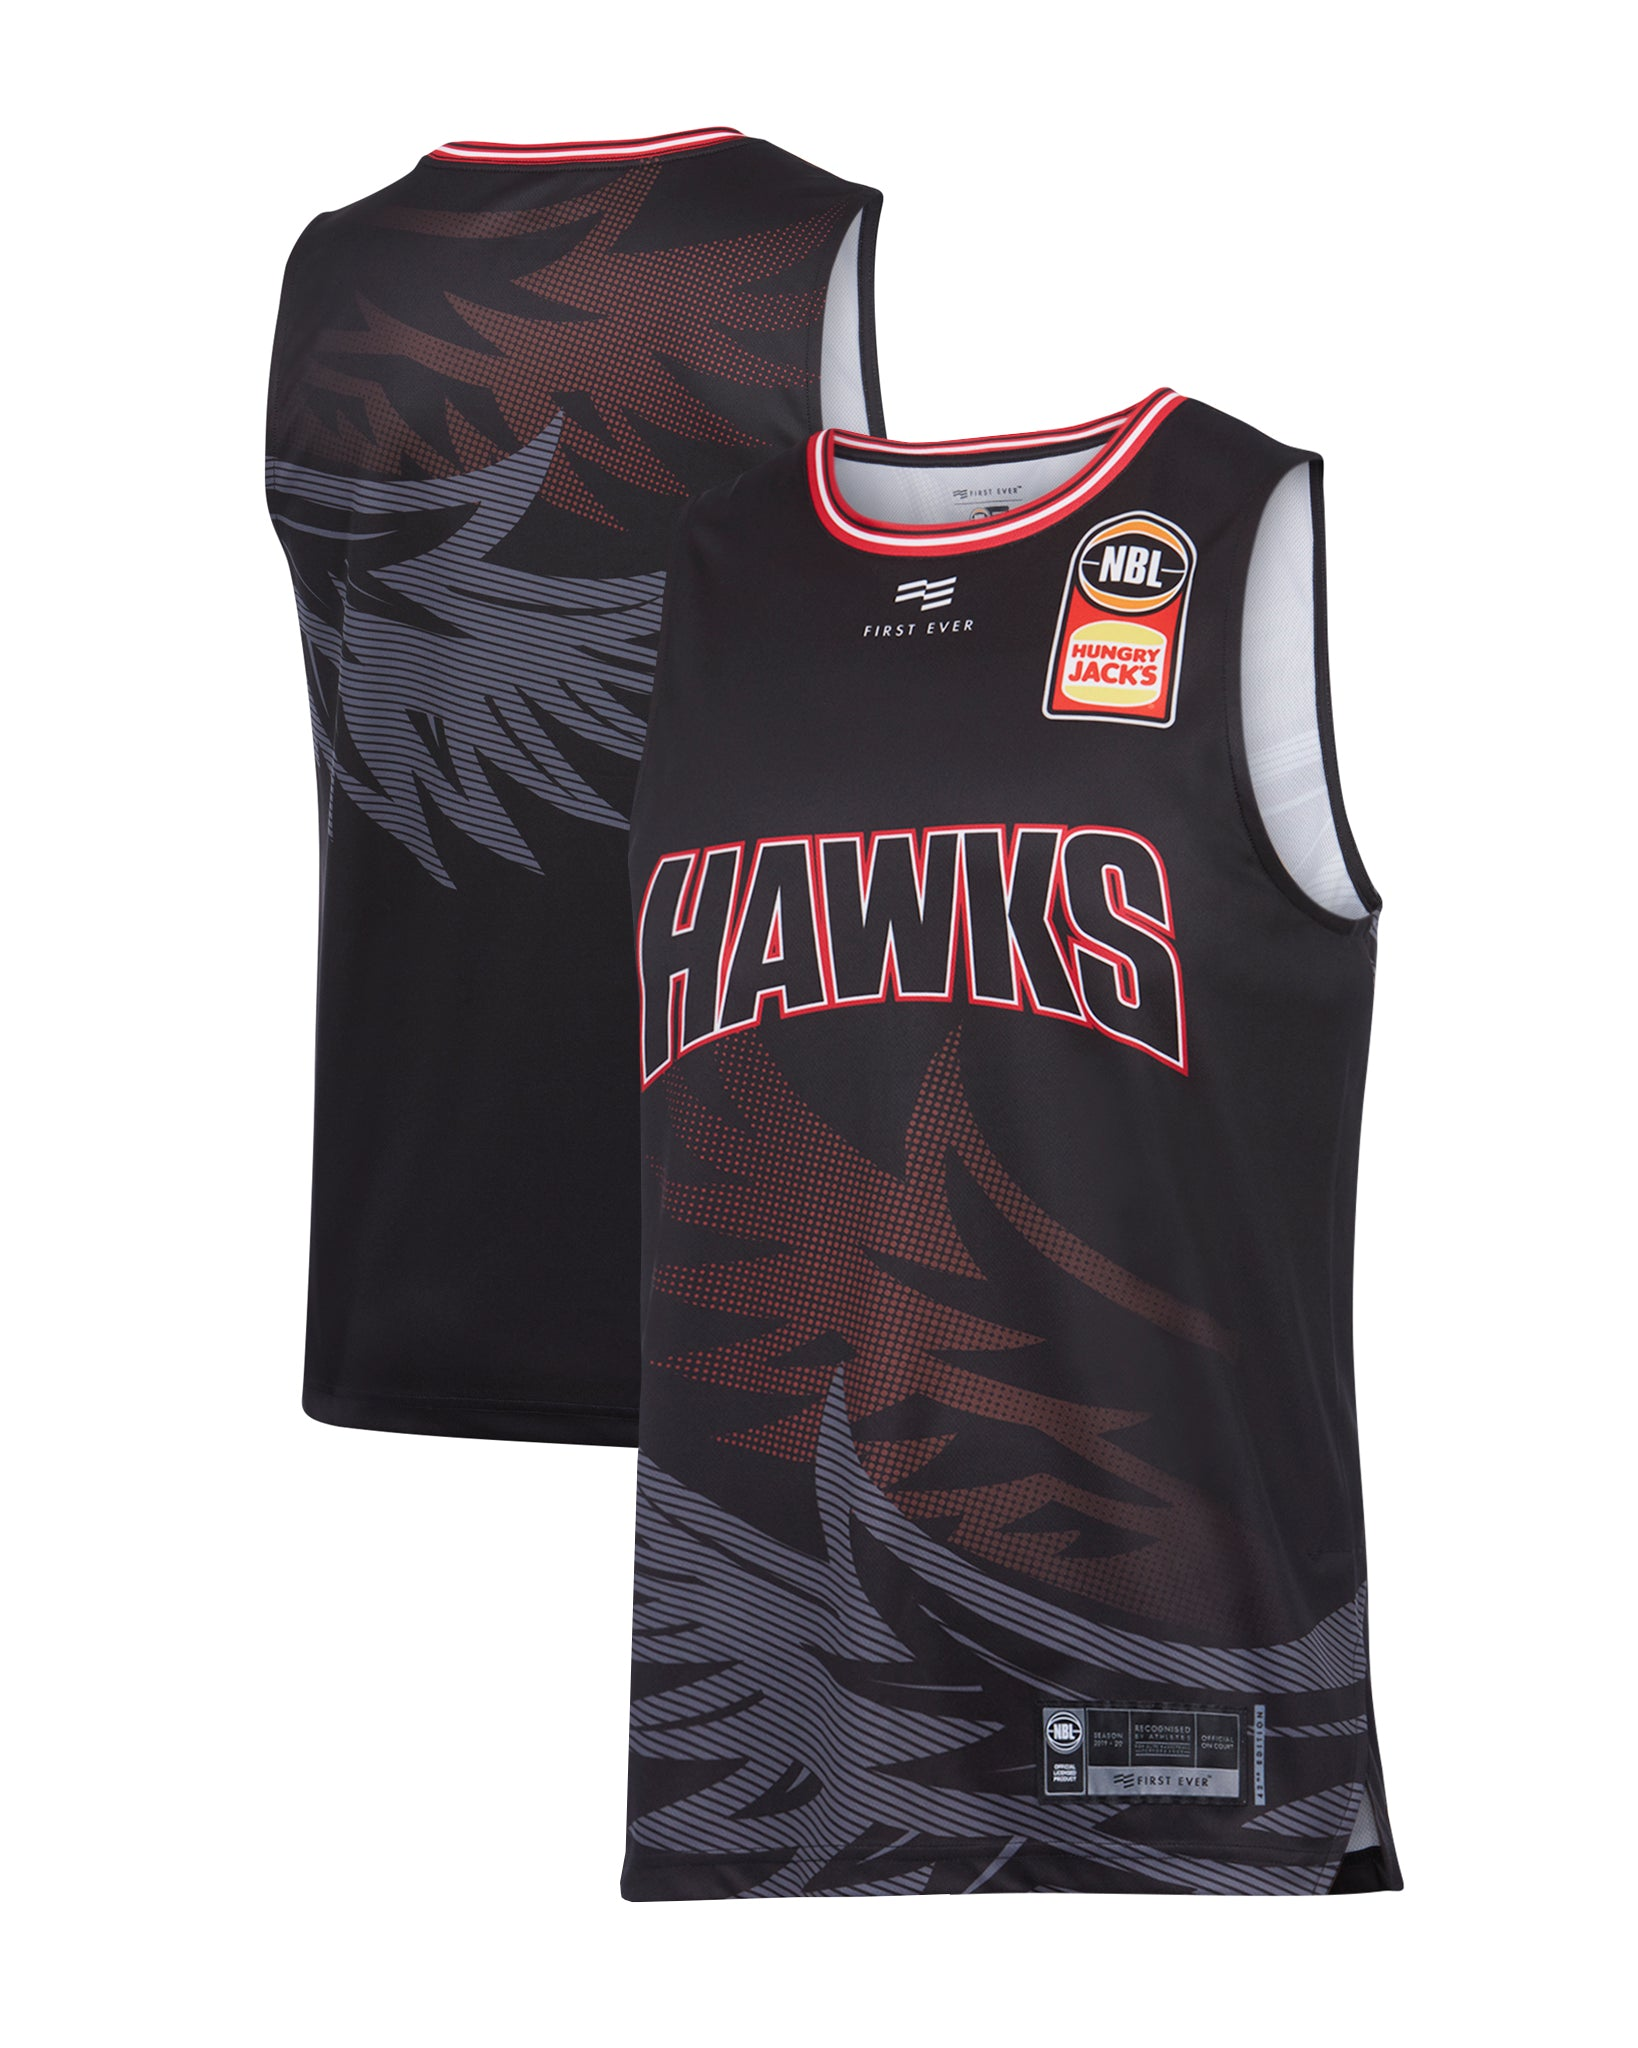 Illawarra Hawks 19/20 Authentic Home Jersey (without SLAM)